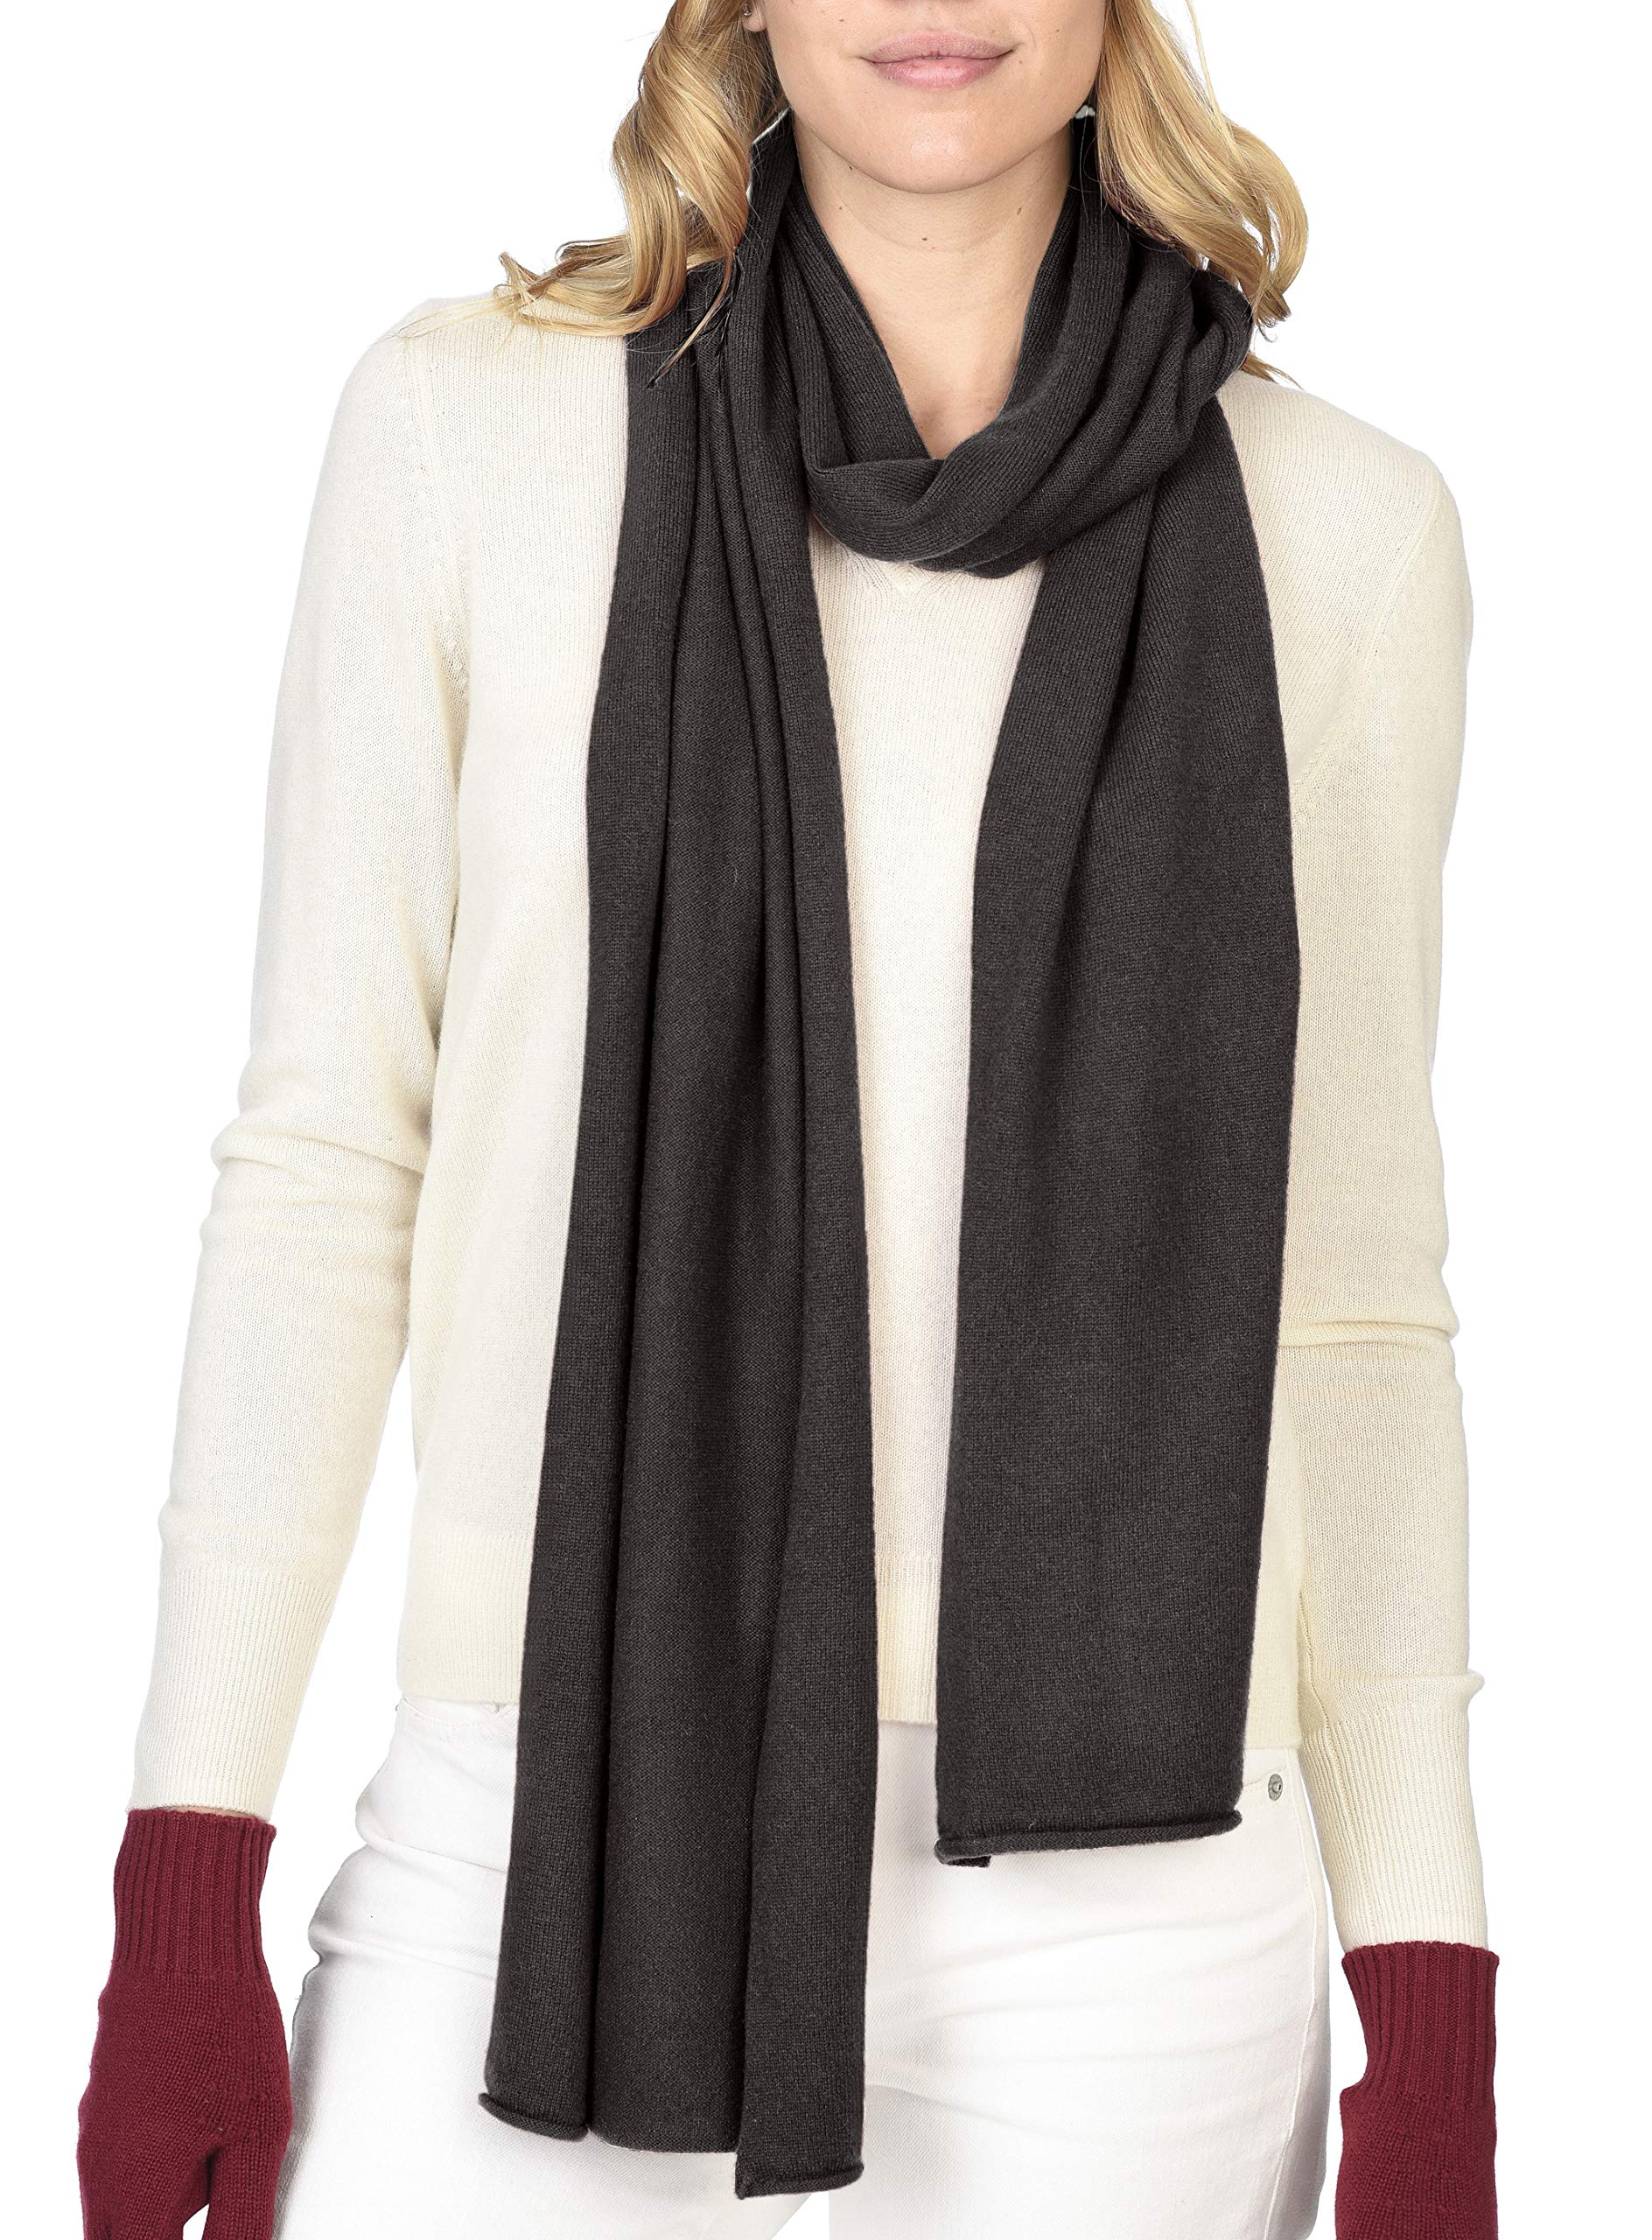 State Cashmere 100% Pure Cashmere Solid Color Scarf Wrap, Ultimate Soft and Cozy 80''x13.5'' (Black Coffee)